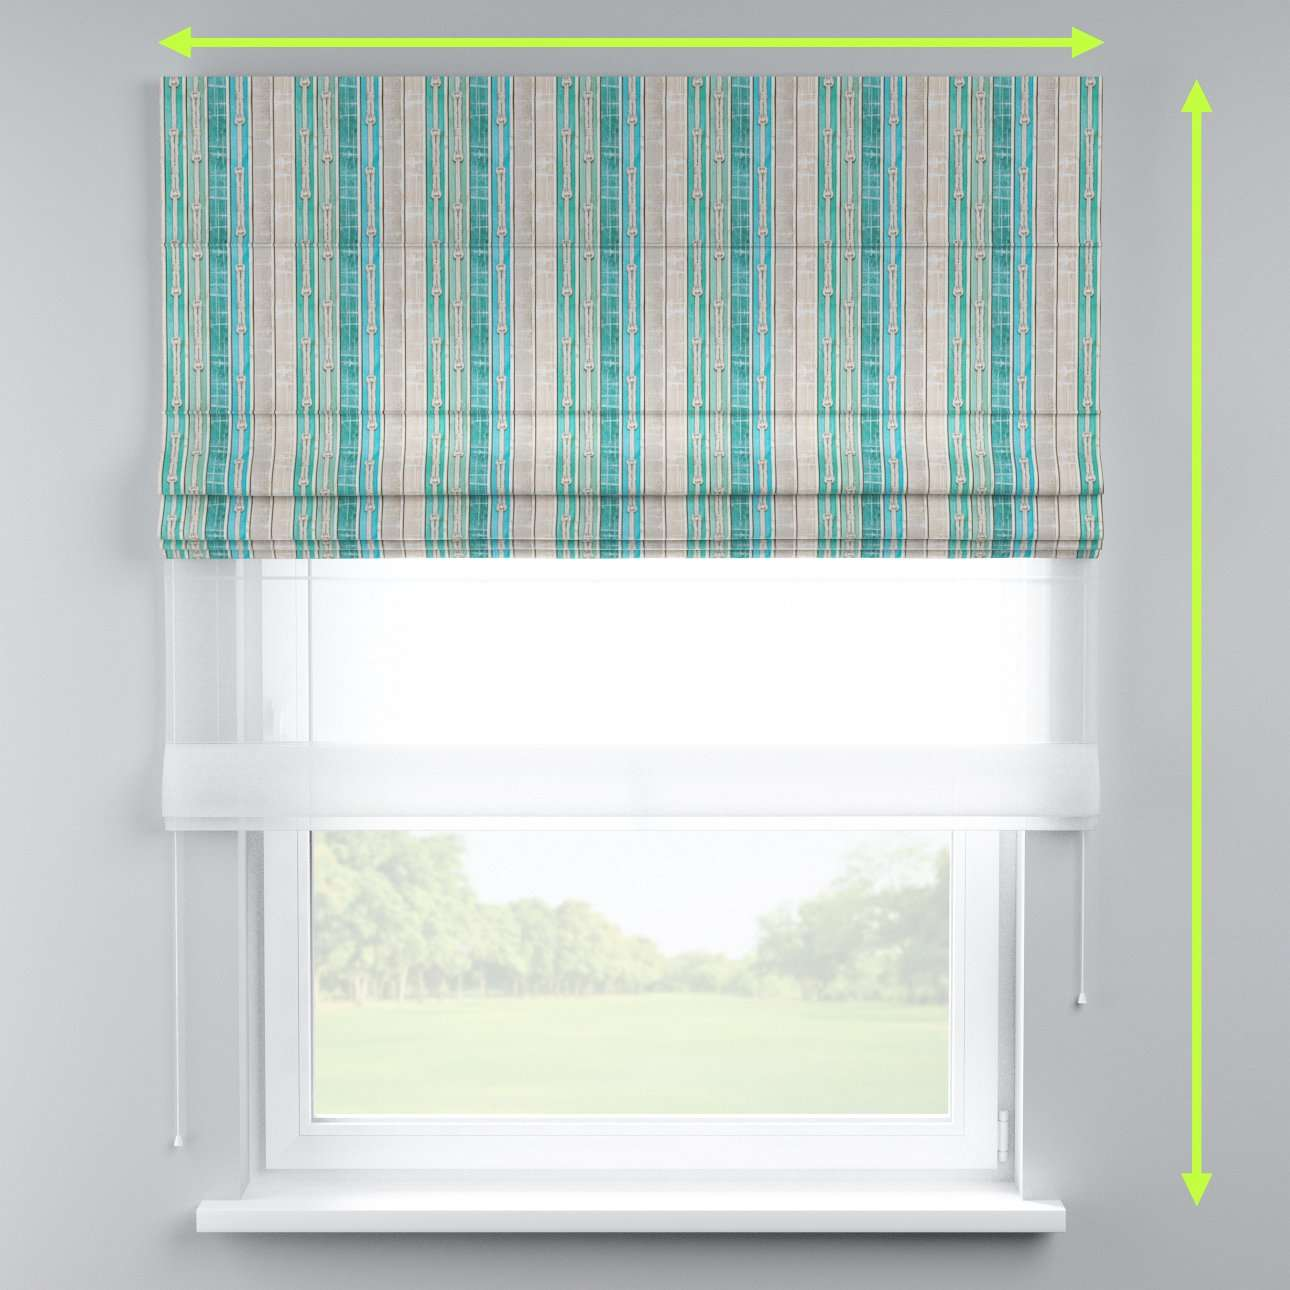 Voile and fabric roman blind (DUO II) in collection Marina, fabric: 140-14